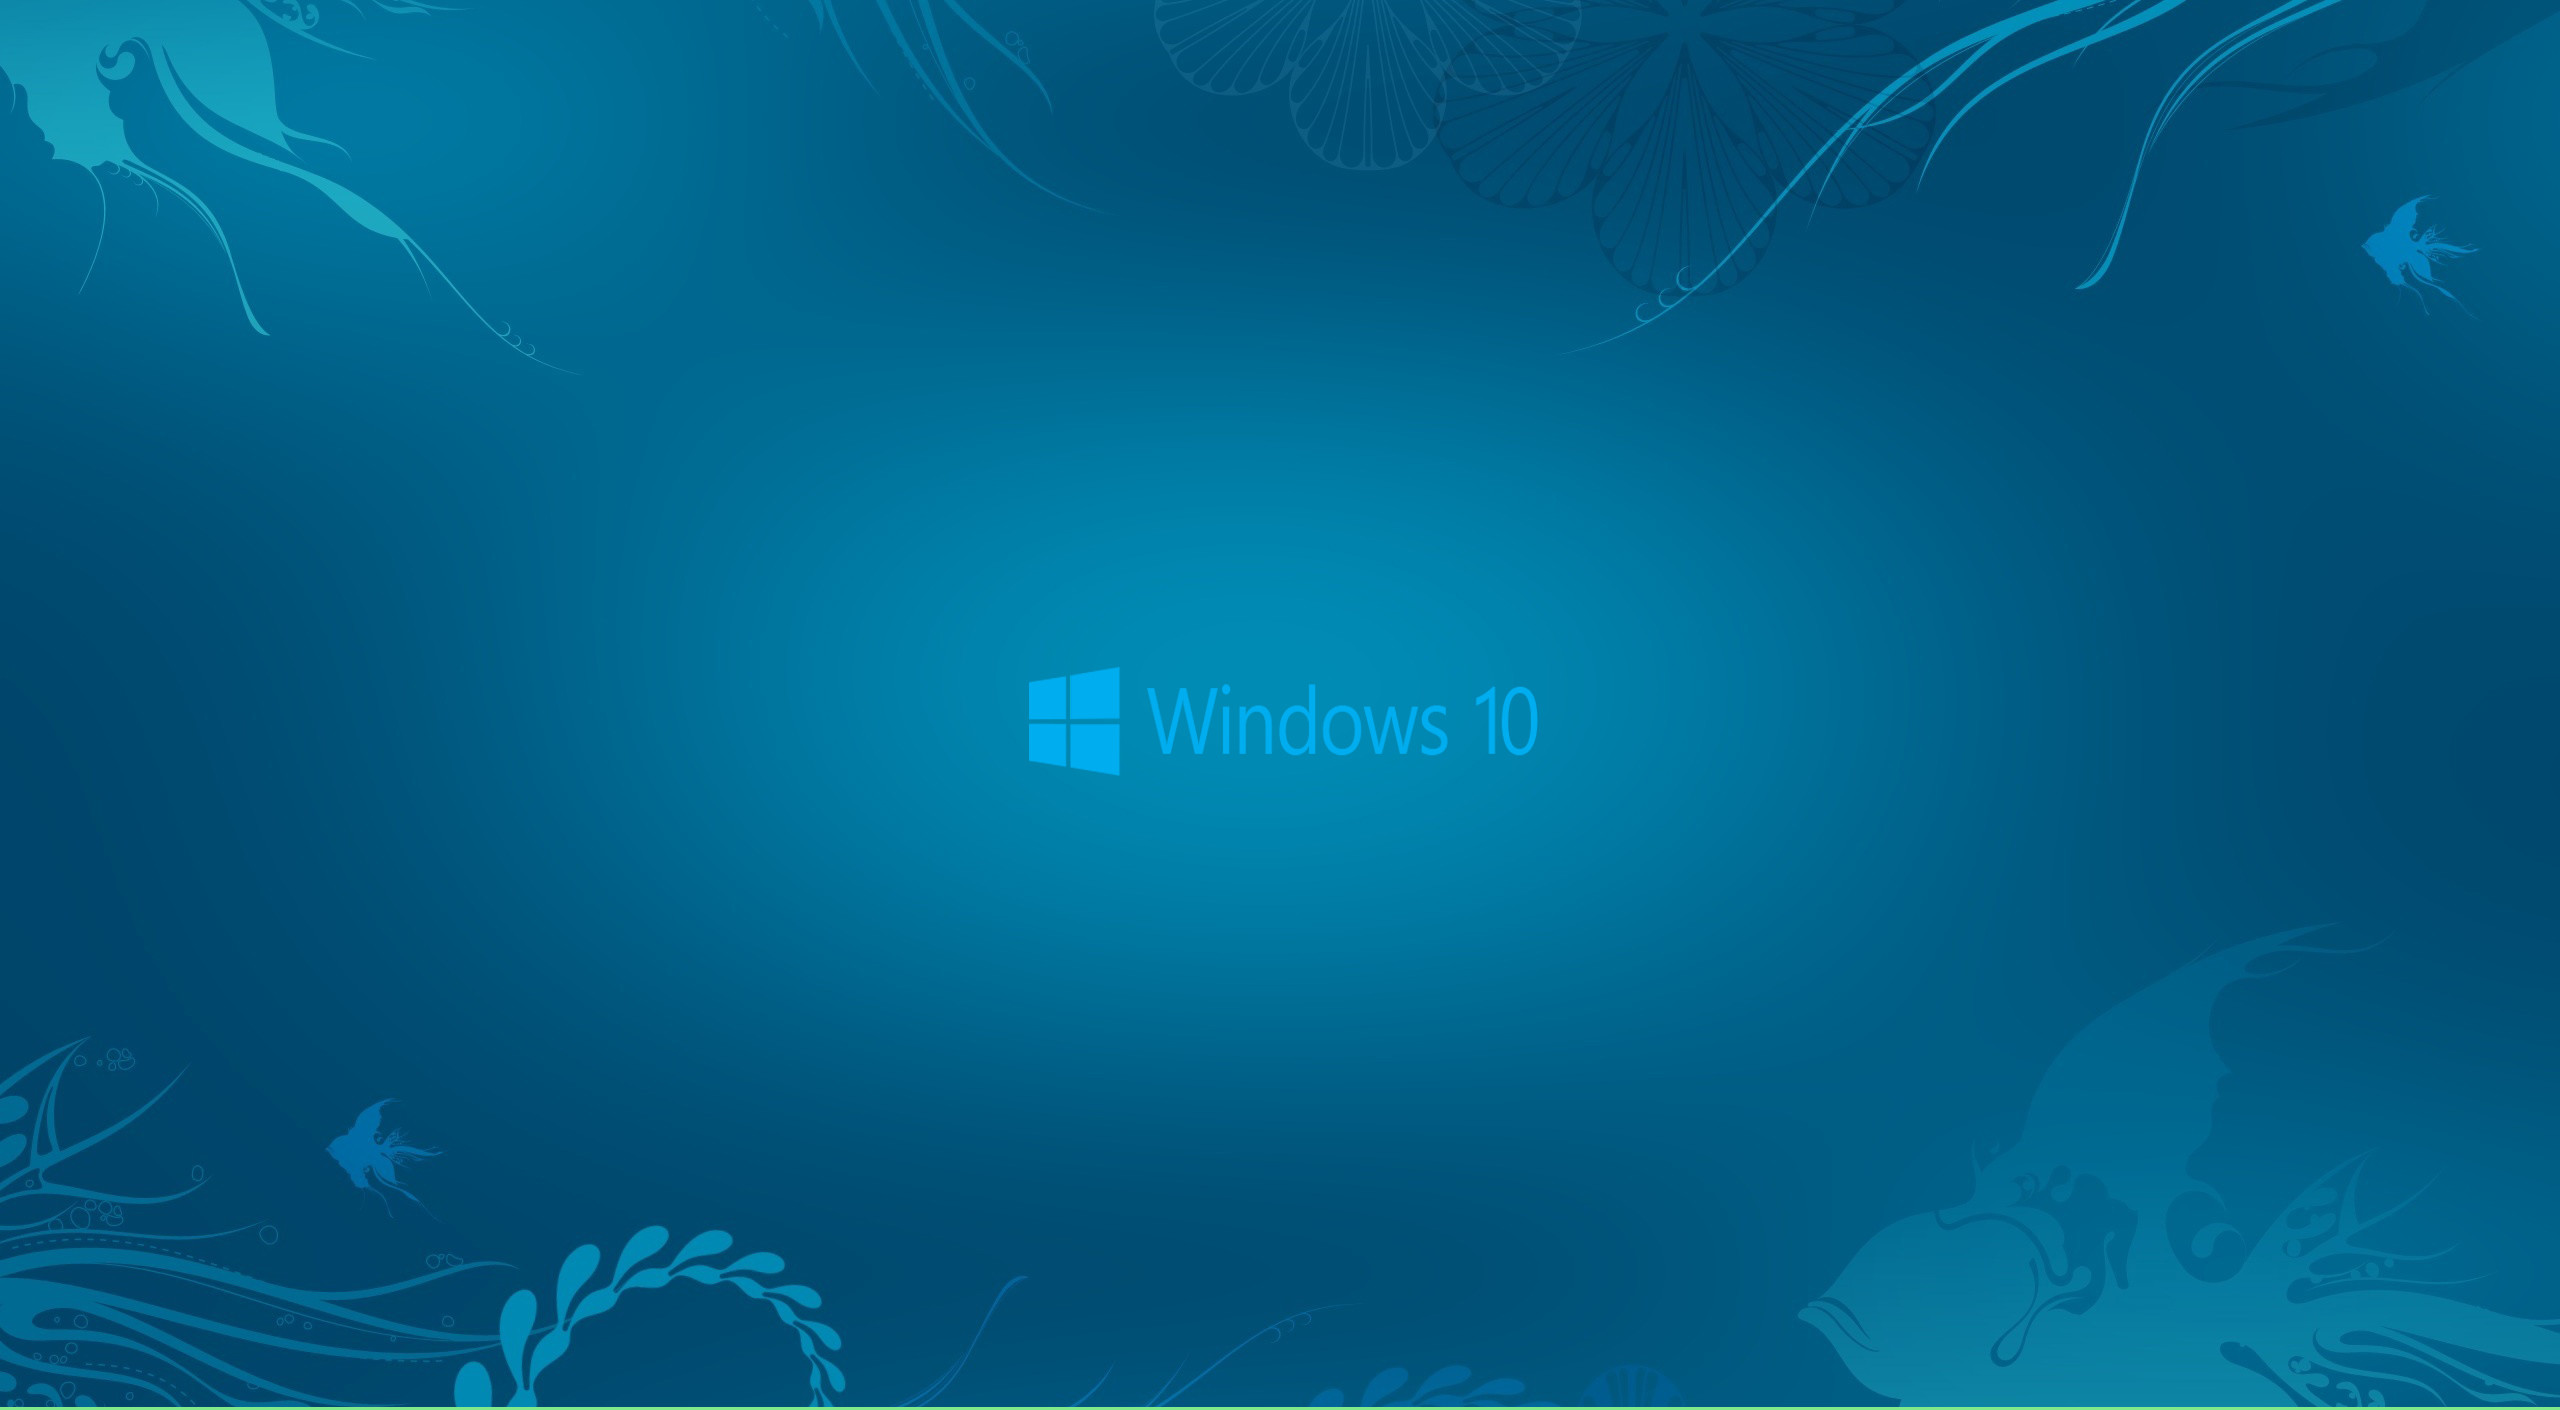 Windows 10 Wallpaper in Abstract Deep Blue See and New Logo | HD .